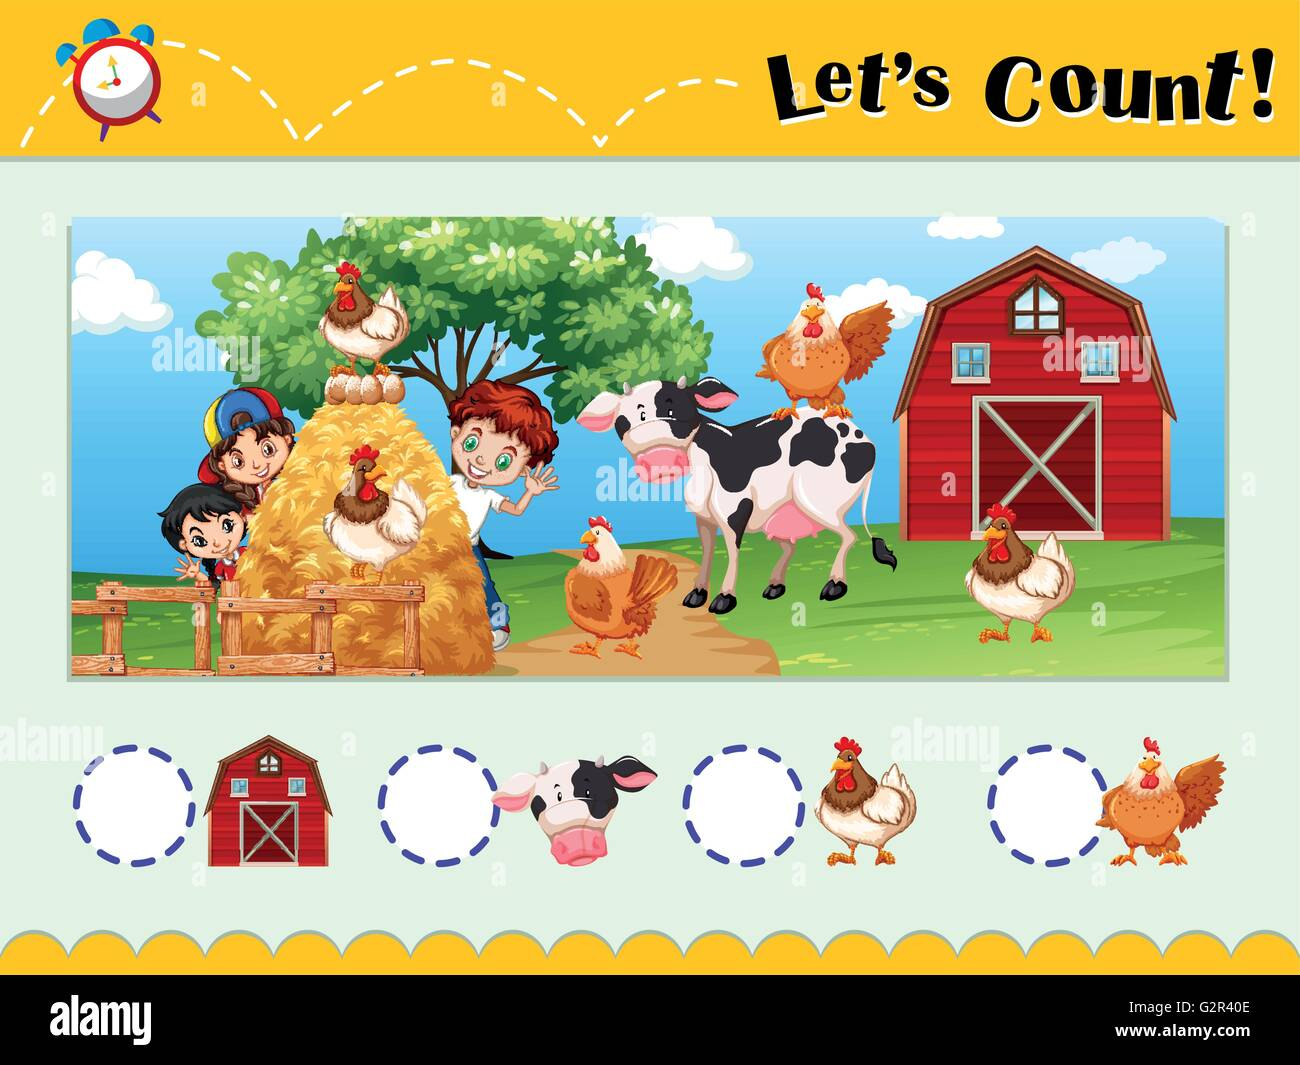 Worksheet Design For Counting Animals Illustration Stock